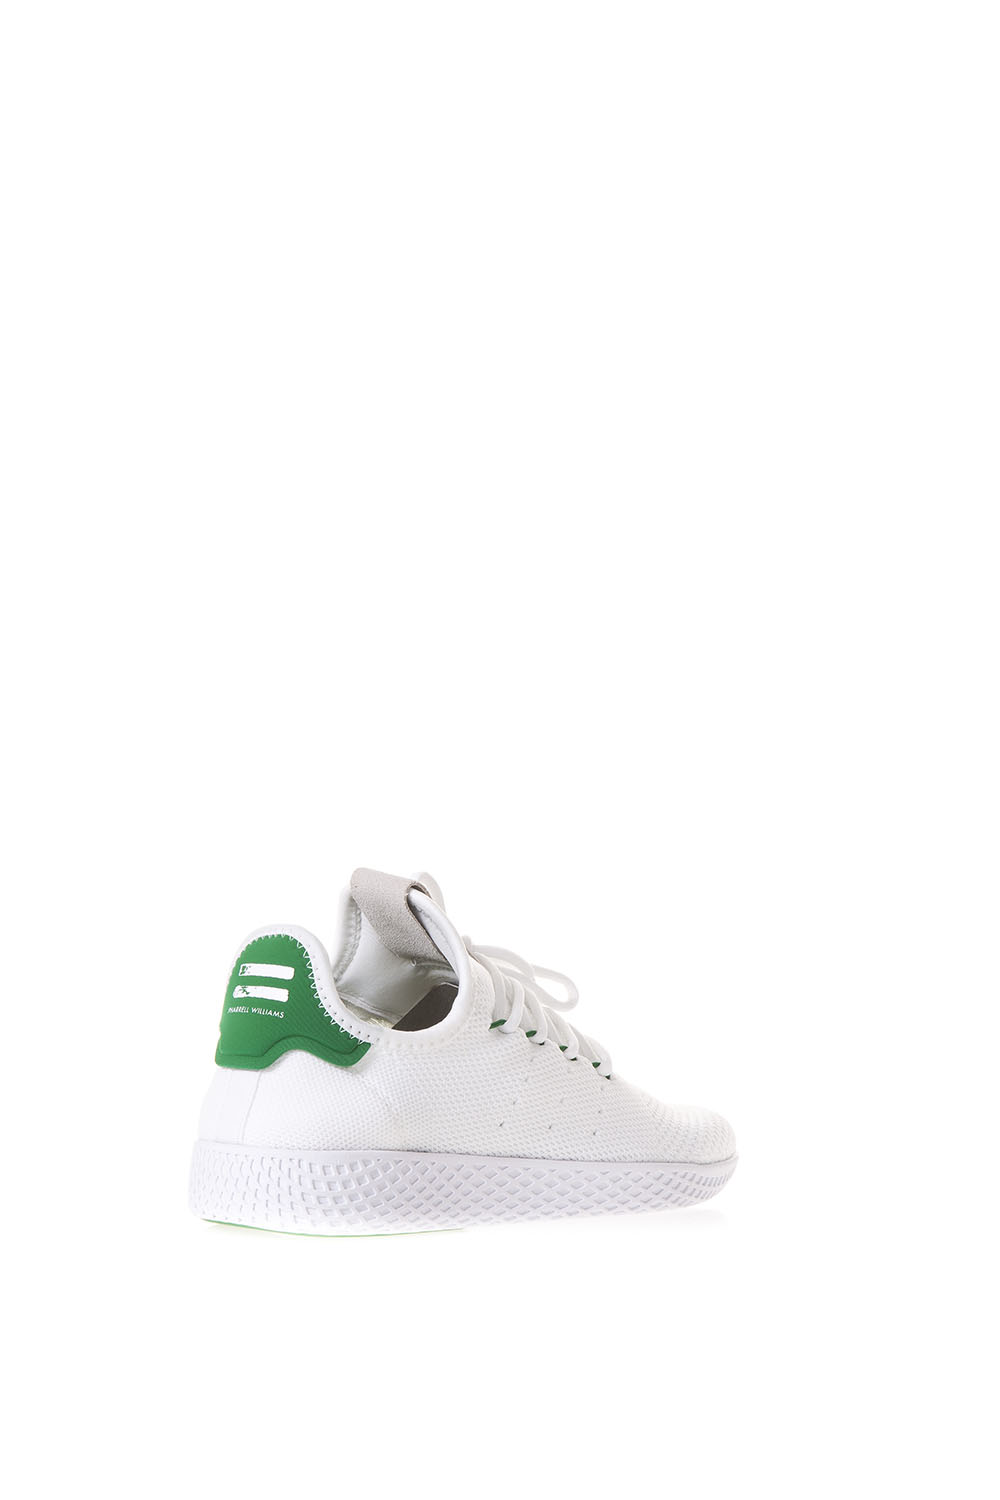 801242a41281d TENNIS HU PRIMEKNIT SHOES SS 2017 - ADIDAS   PHARRELL ...